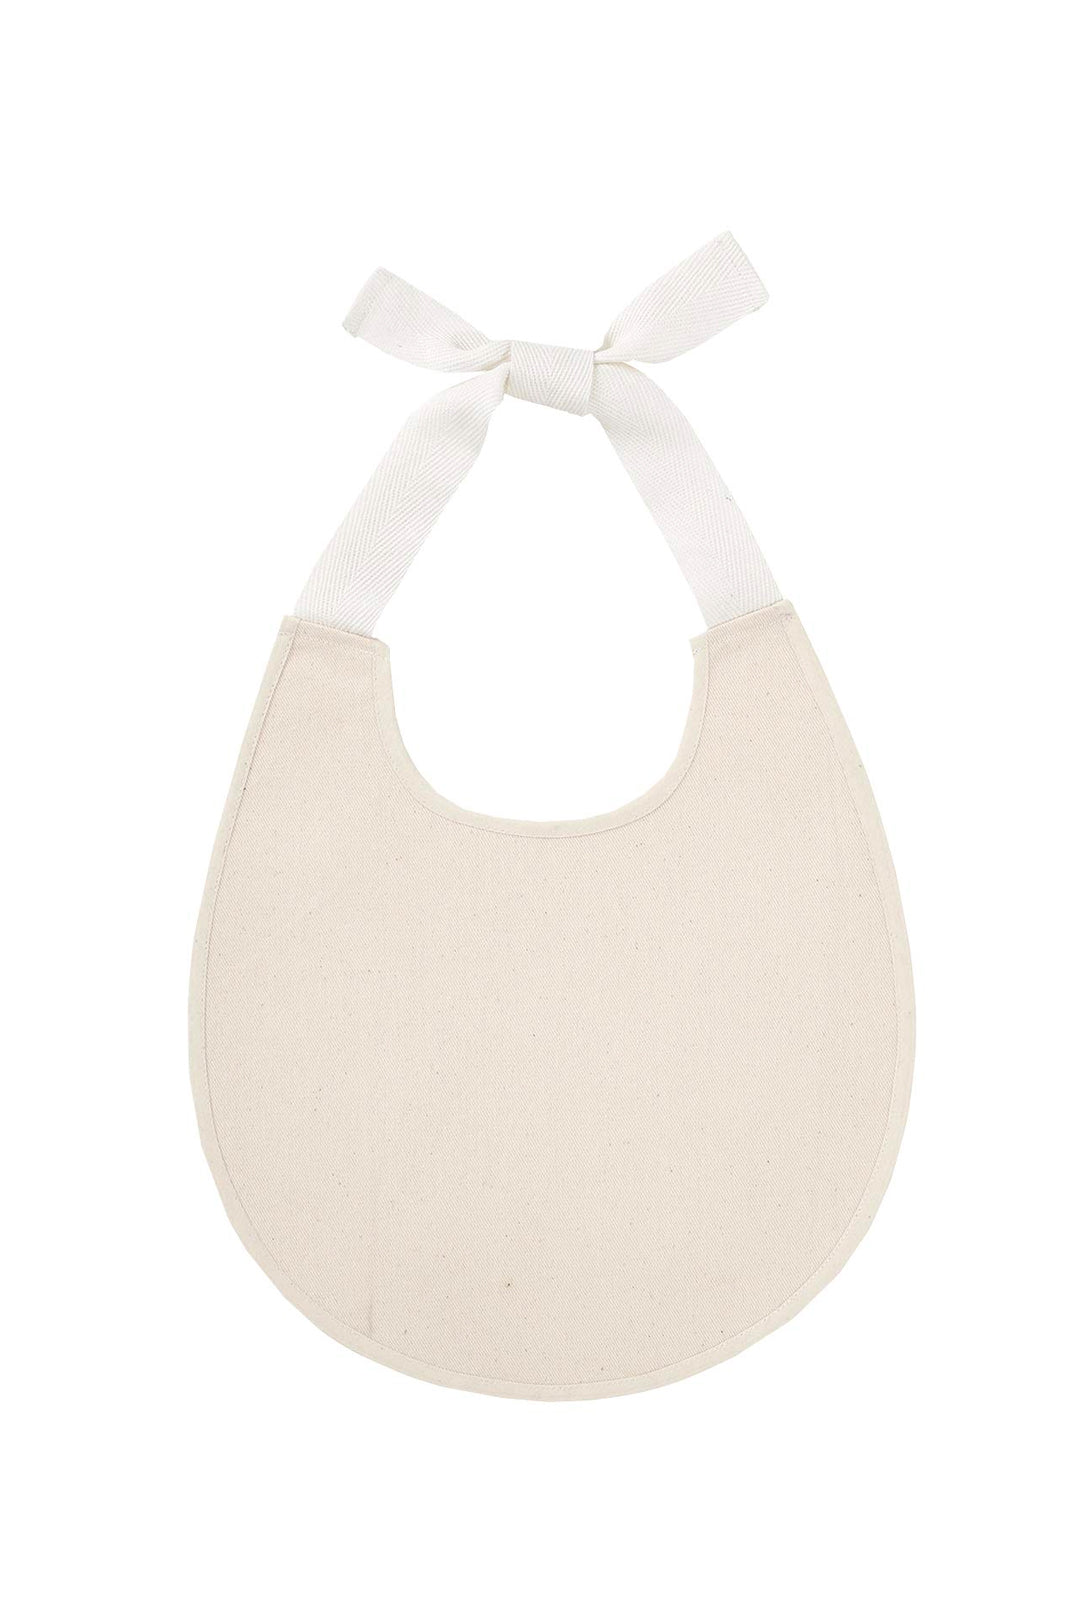 Heirloom Cream Baby Bib